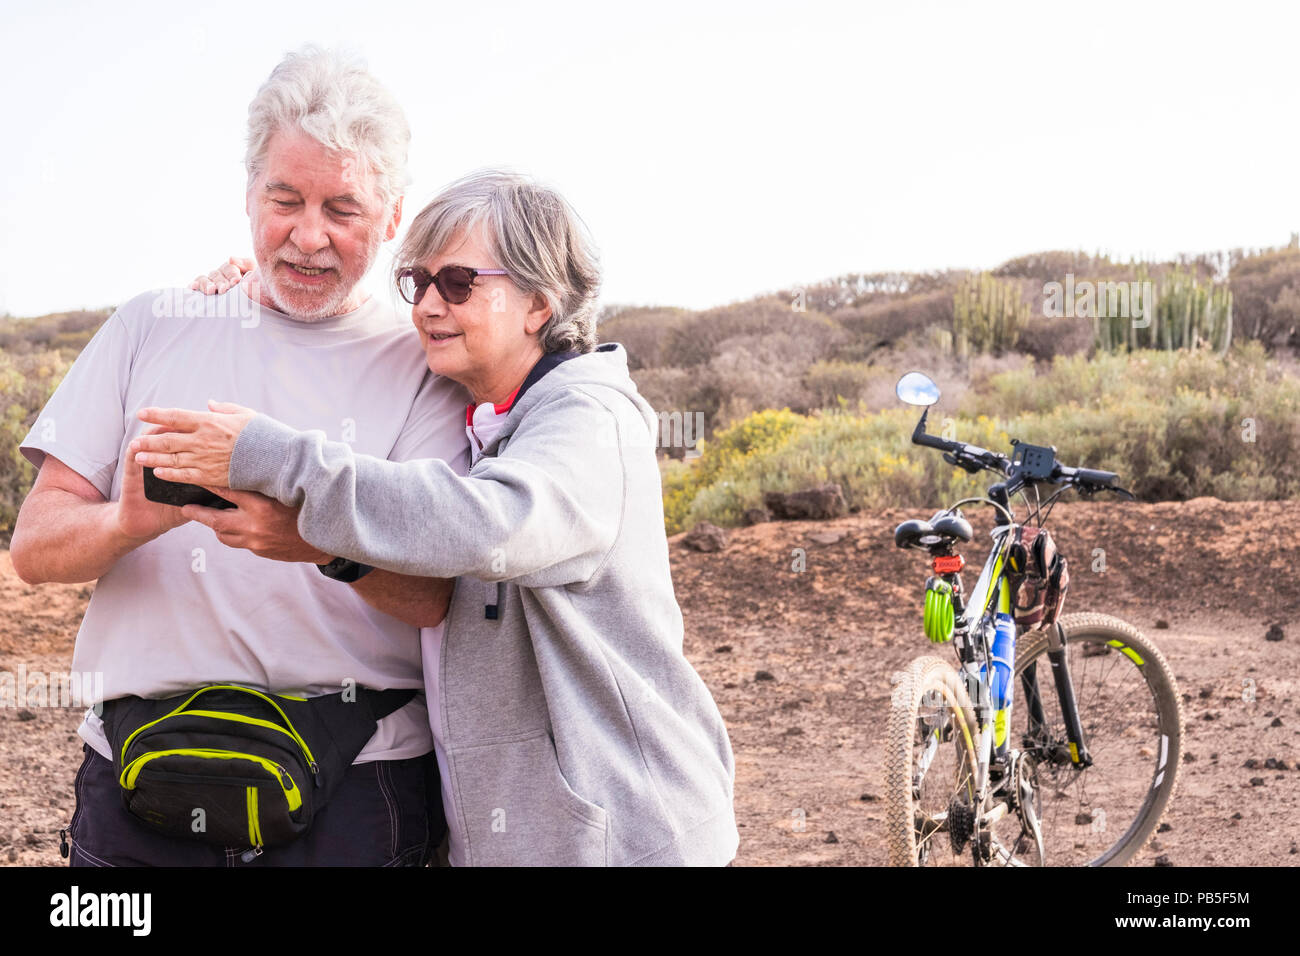 couple of beautiful caucasian active adult senior enjoy mountain bike. old and young rider in outdoor sport bikes activity together checking the gps m - Stock Image